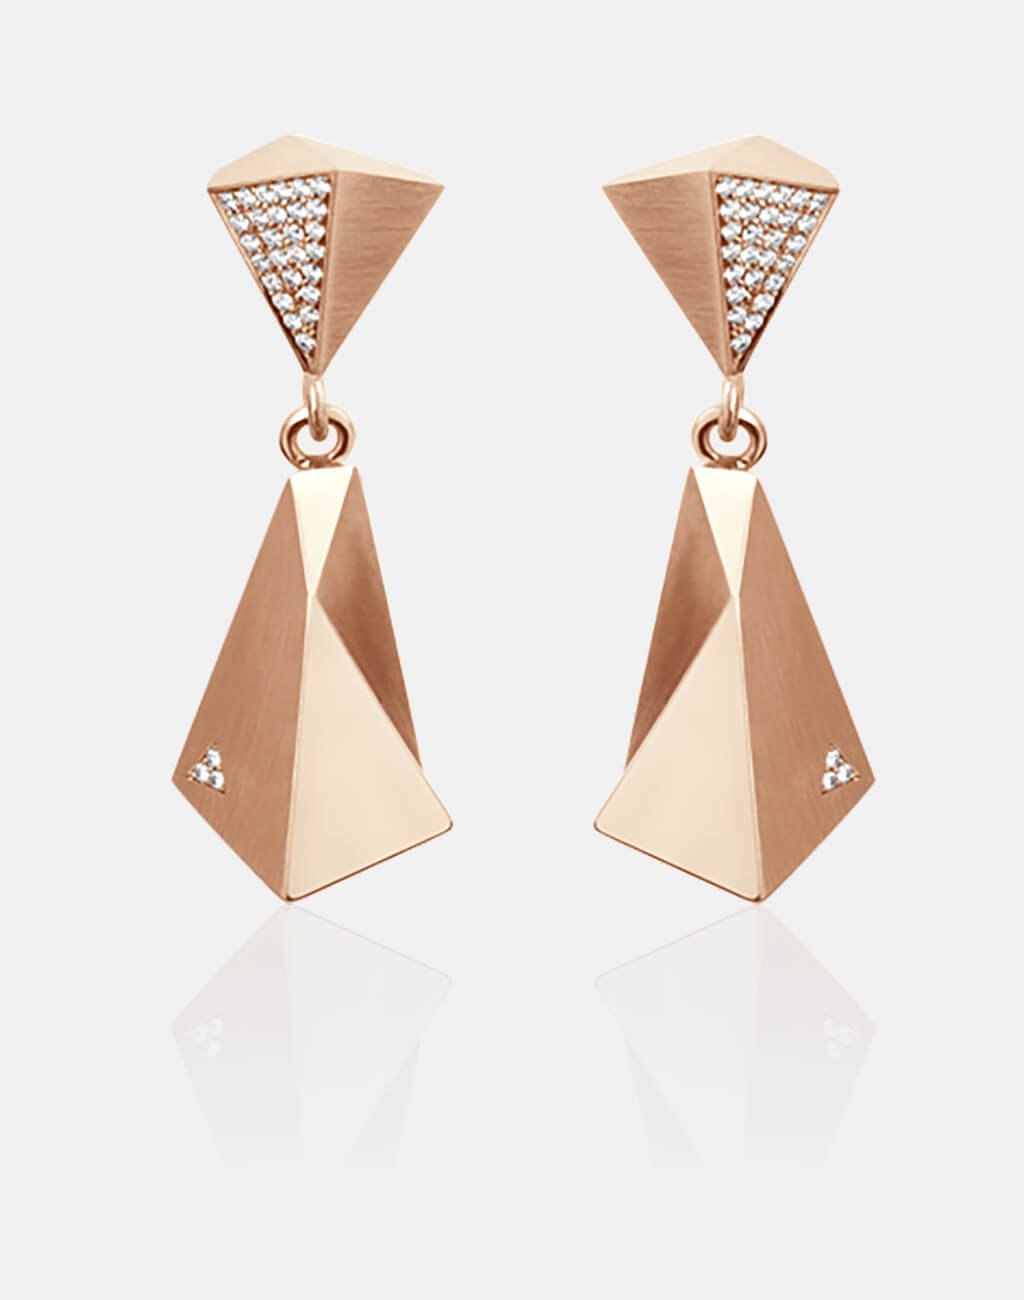 Stealth | Ohrringe, Ohrhänger 750/- Rosegold, 60 Brillanten, Diamanten | earrings 18kt rose gold, diamonds | SYNO-Schmuck.com